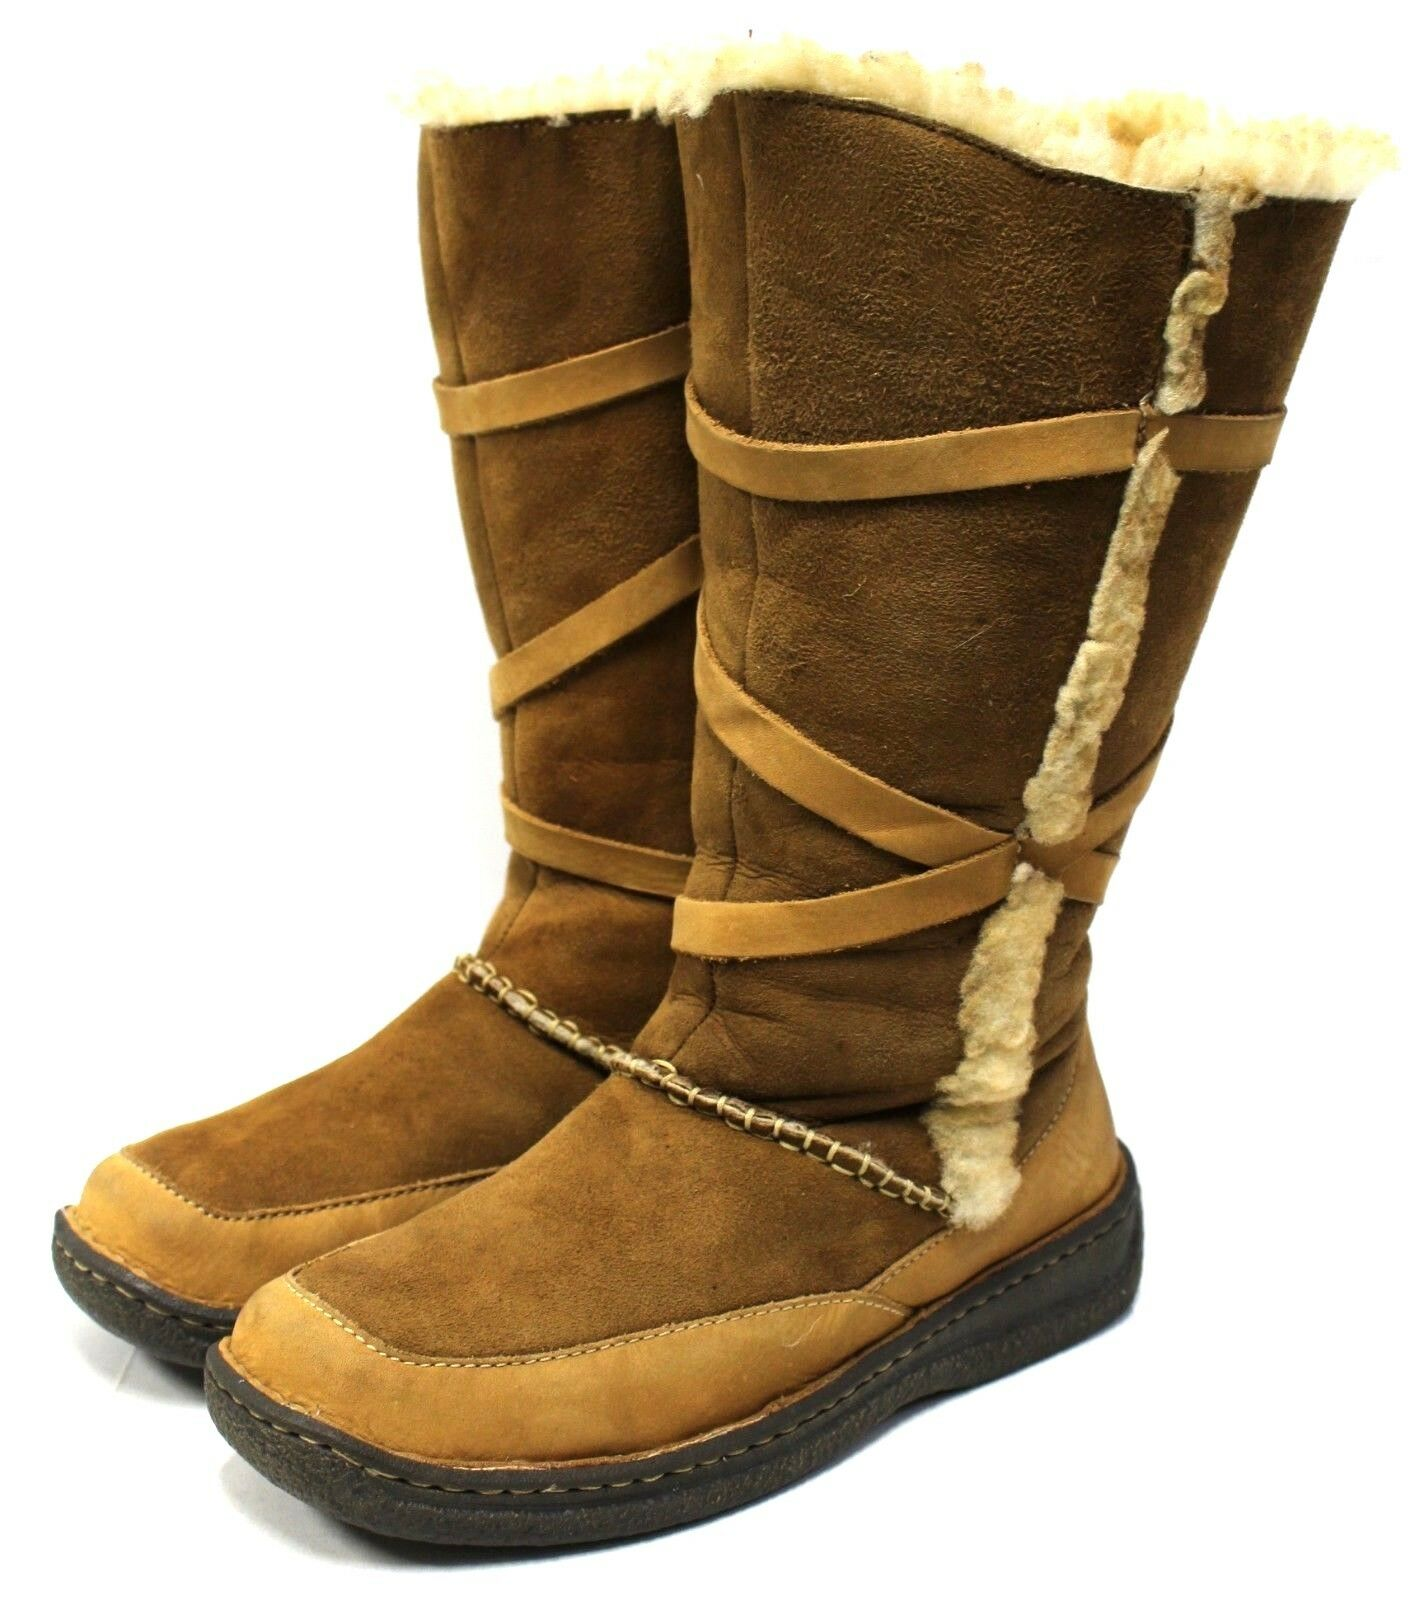 Cabela's Women 8M Winter Boots Brown Suede Leather Shearling Lining Fur Platform